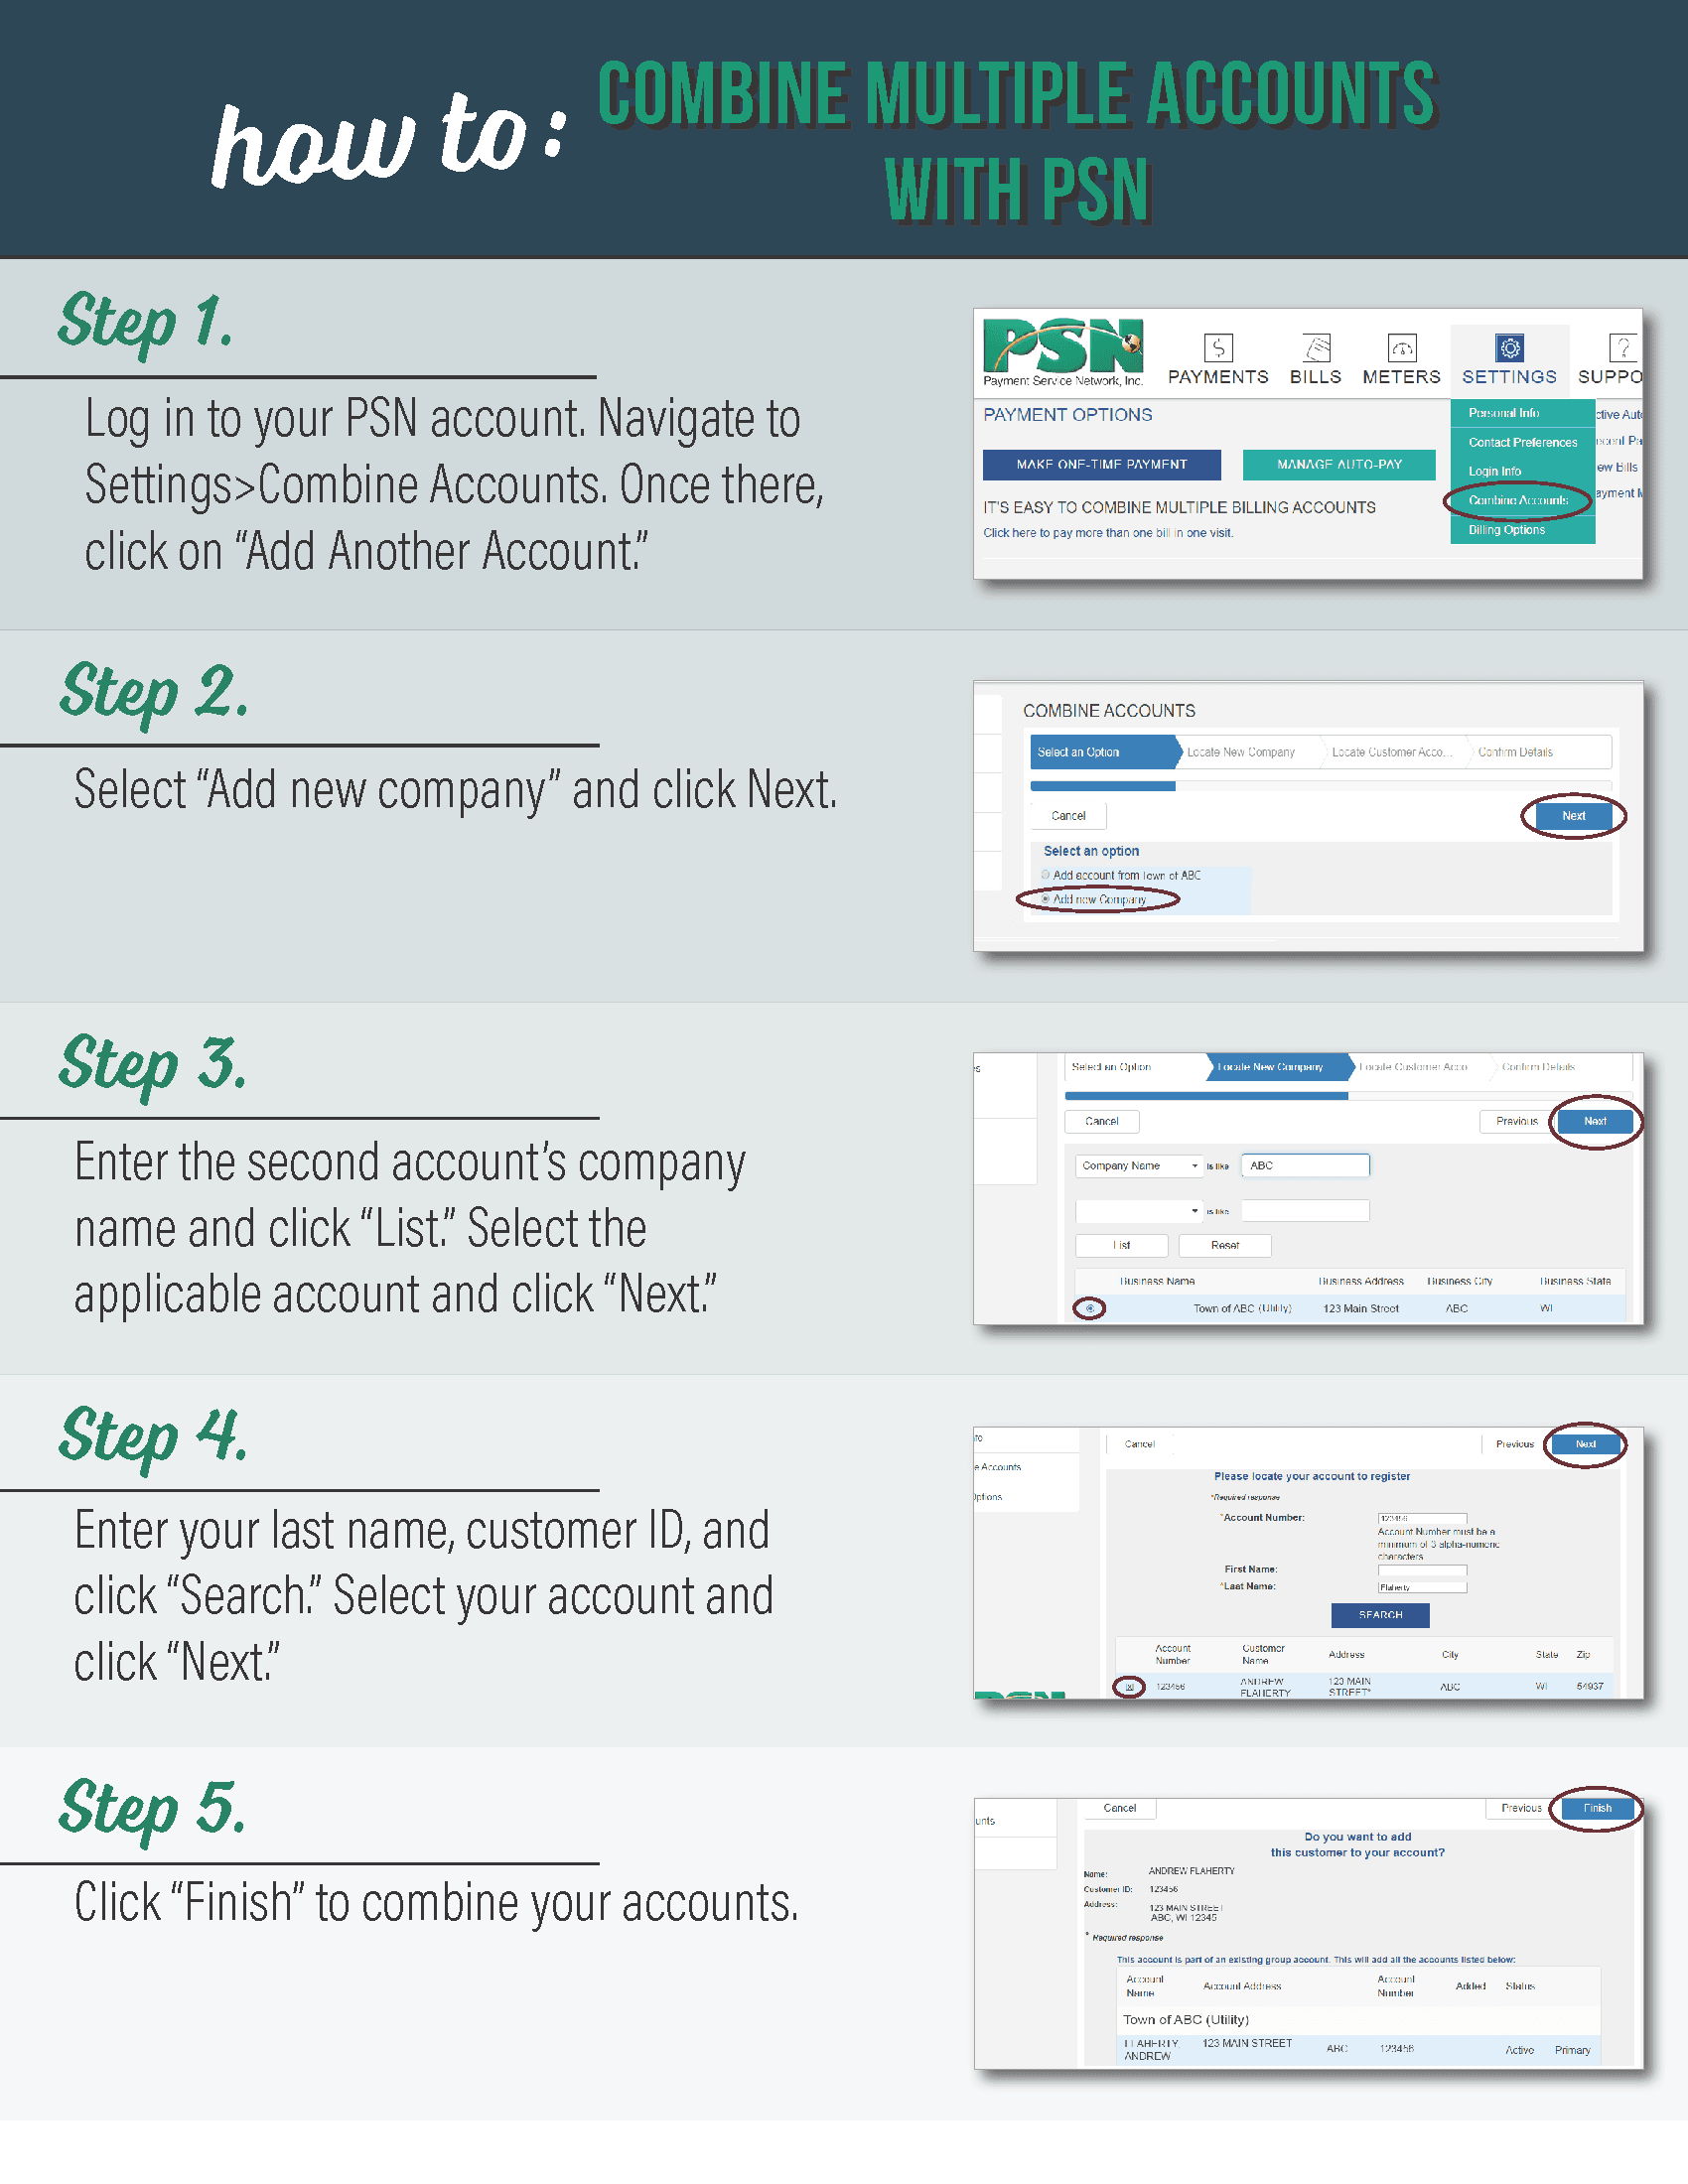 How to Merge Your PSN Accounts Infographic Opens in new window